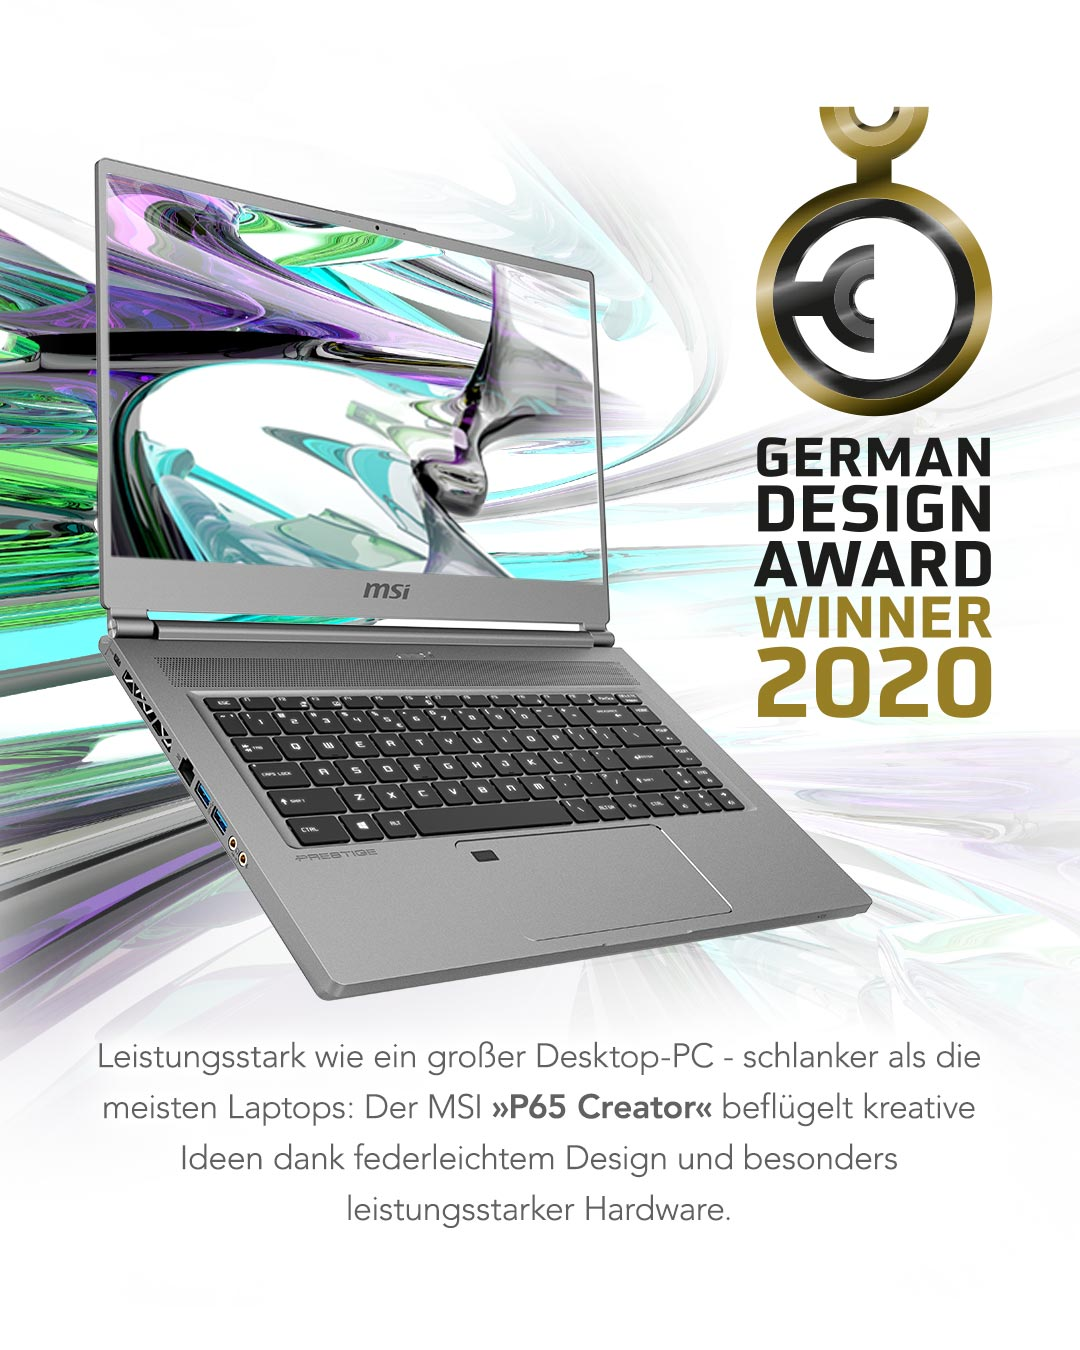 P65 German Design Award